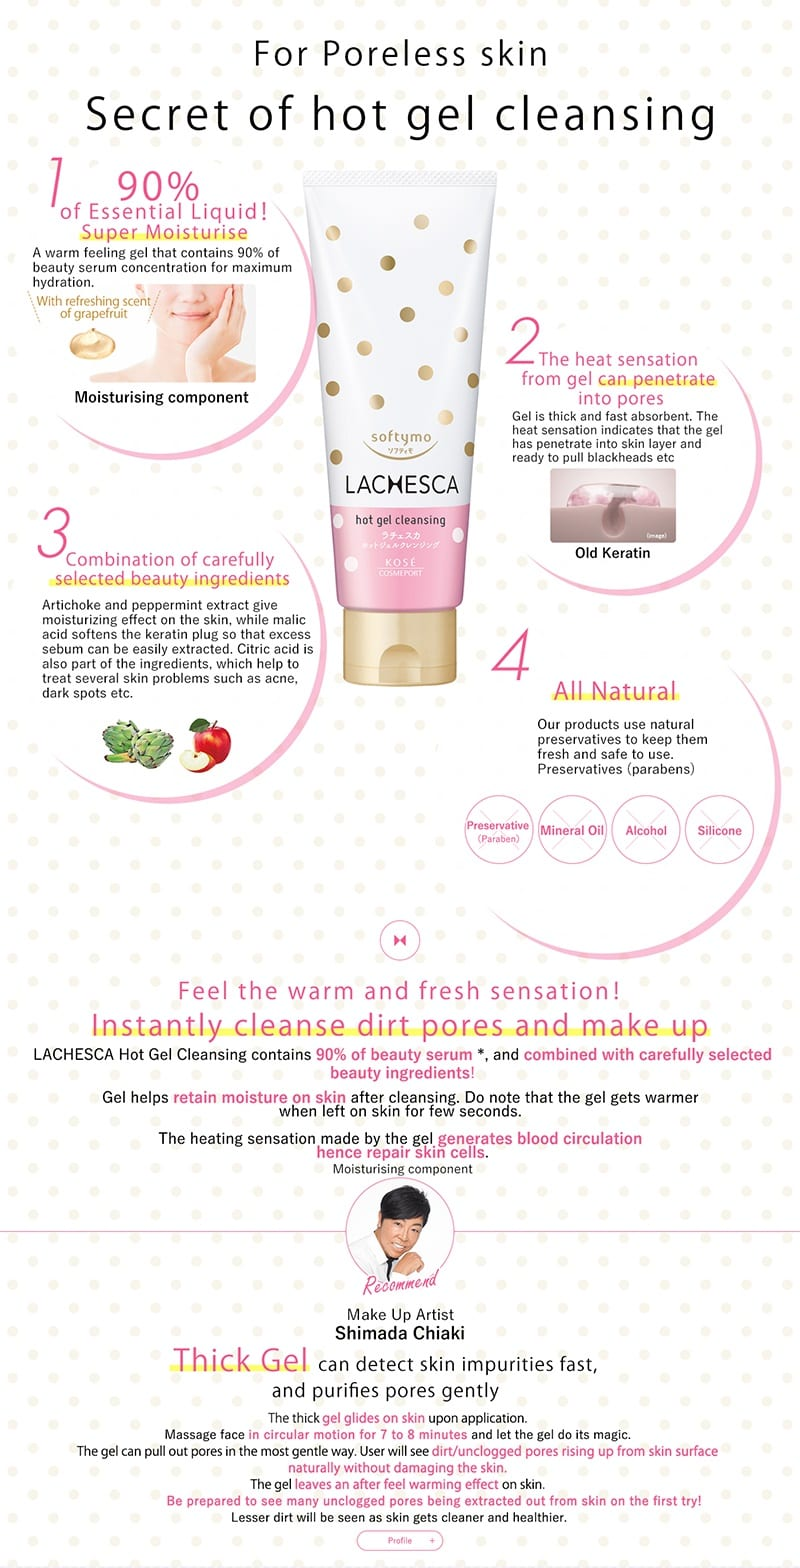 Lachesca Hot Gel Cleansing - Feature 1